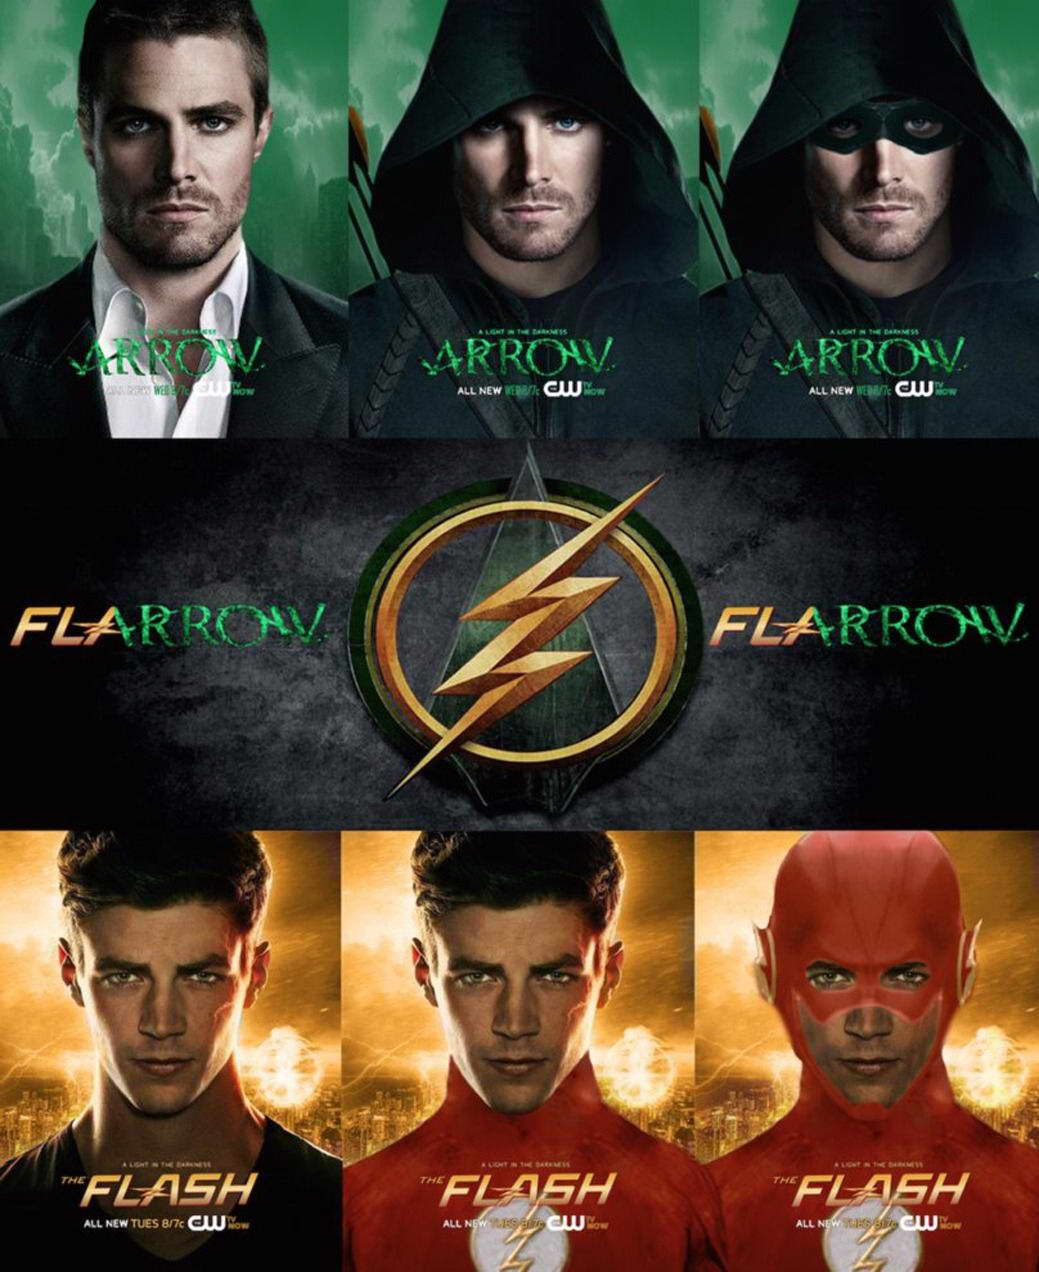 15614 The Flash And Arrow TV Show Wall Print POSTER AU